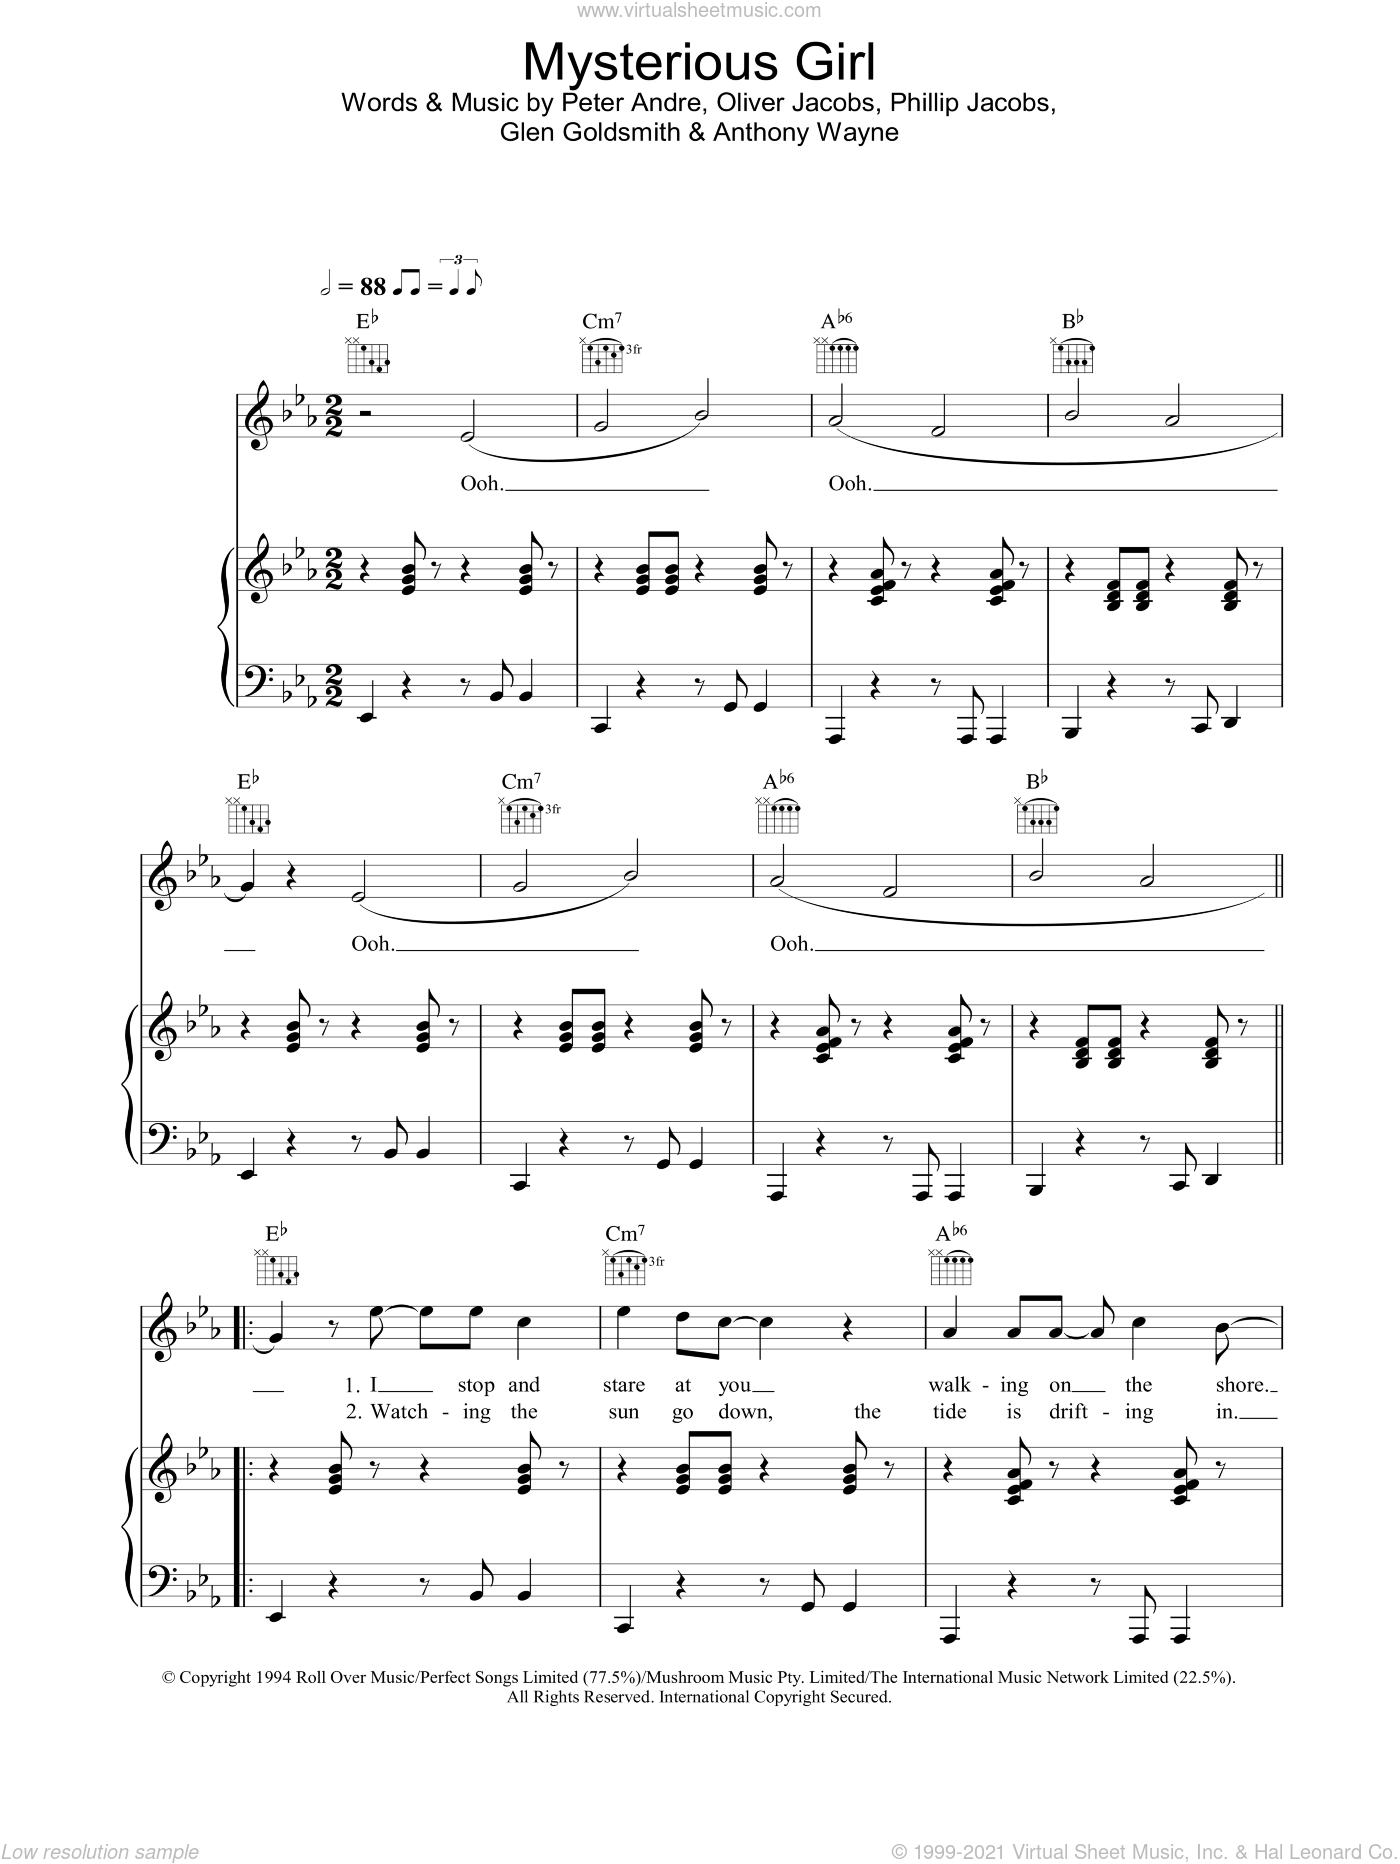 Mysterious Girl sheet music for voice, piano or guitar by Peter Andre. Score Image Preview.